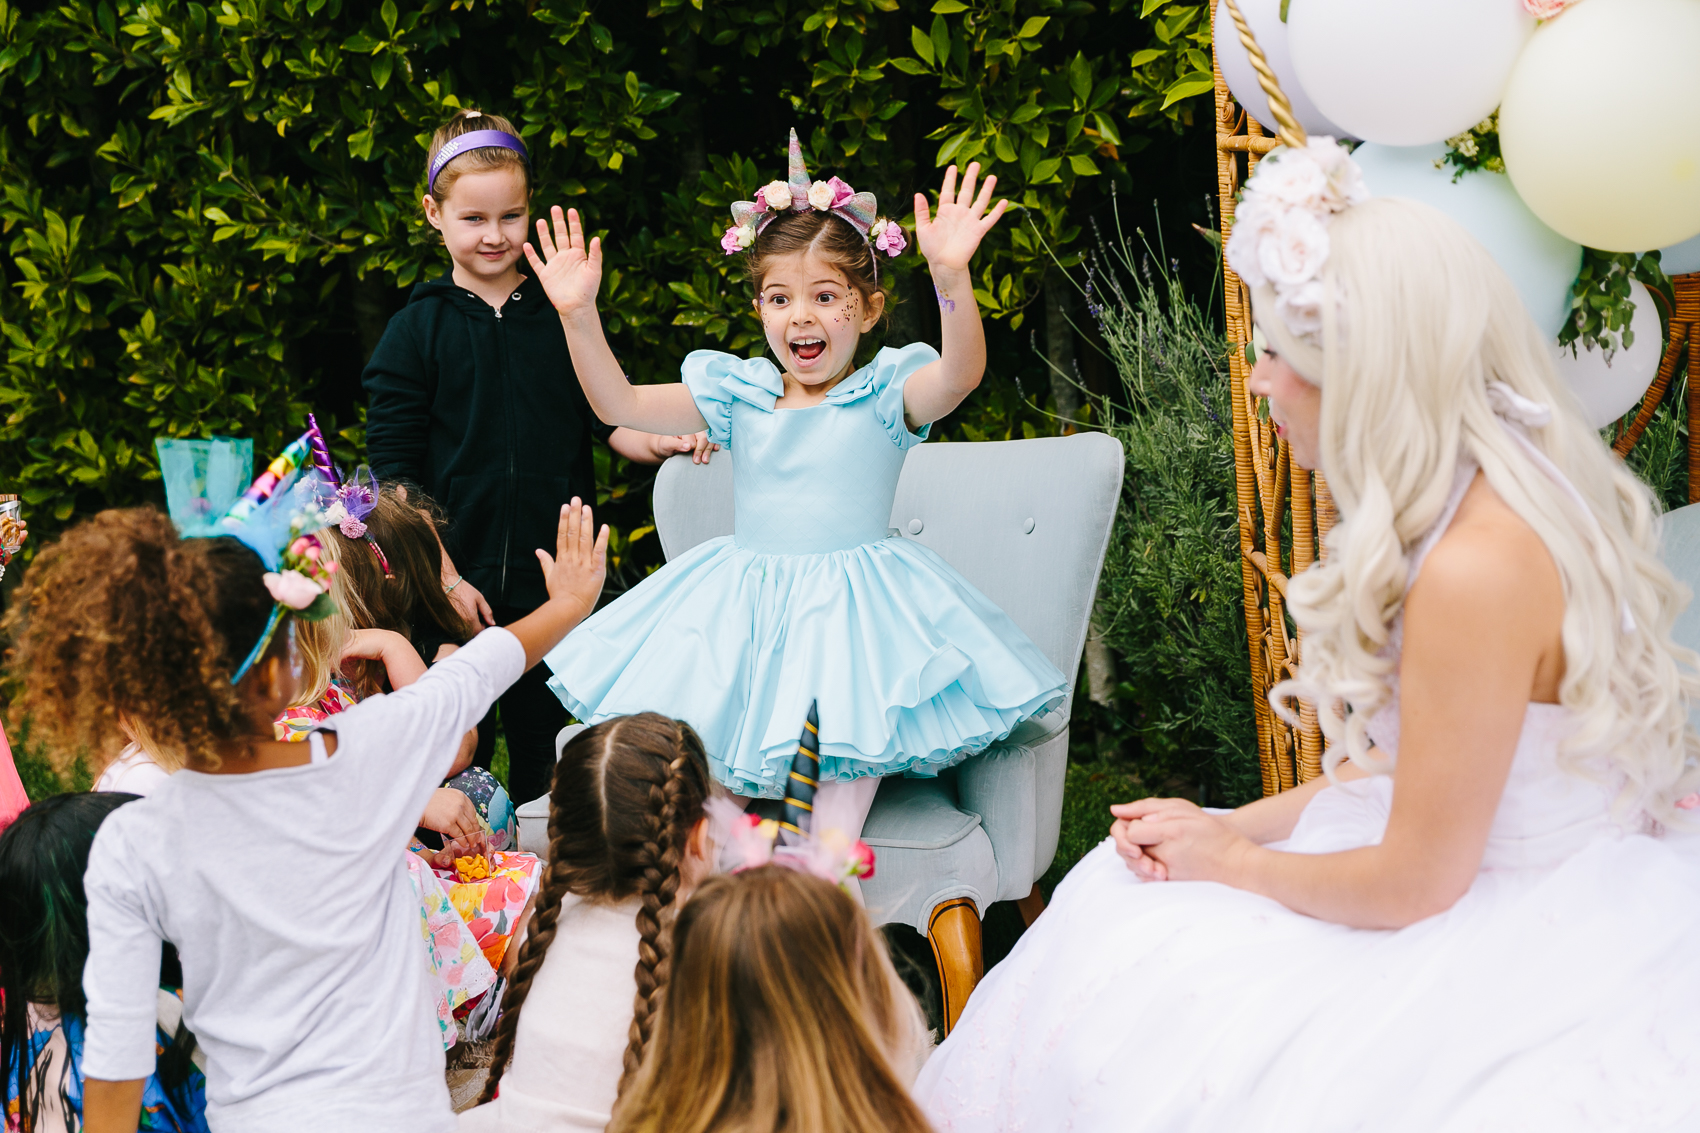 Los_Angeles_Family_Photographer_Luxury_Childrens_Party_Beverly_Hills_Unicorn_Birthday_Party-1143.jpg